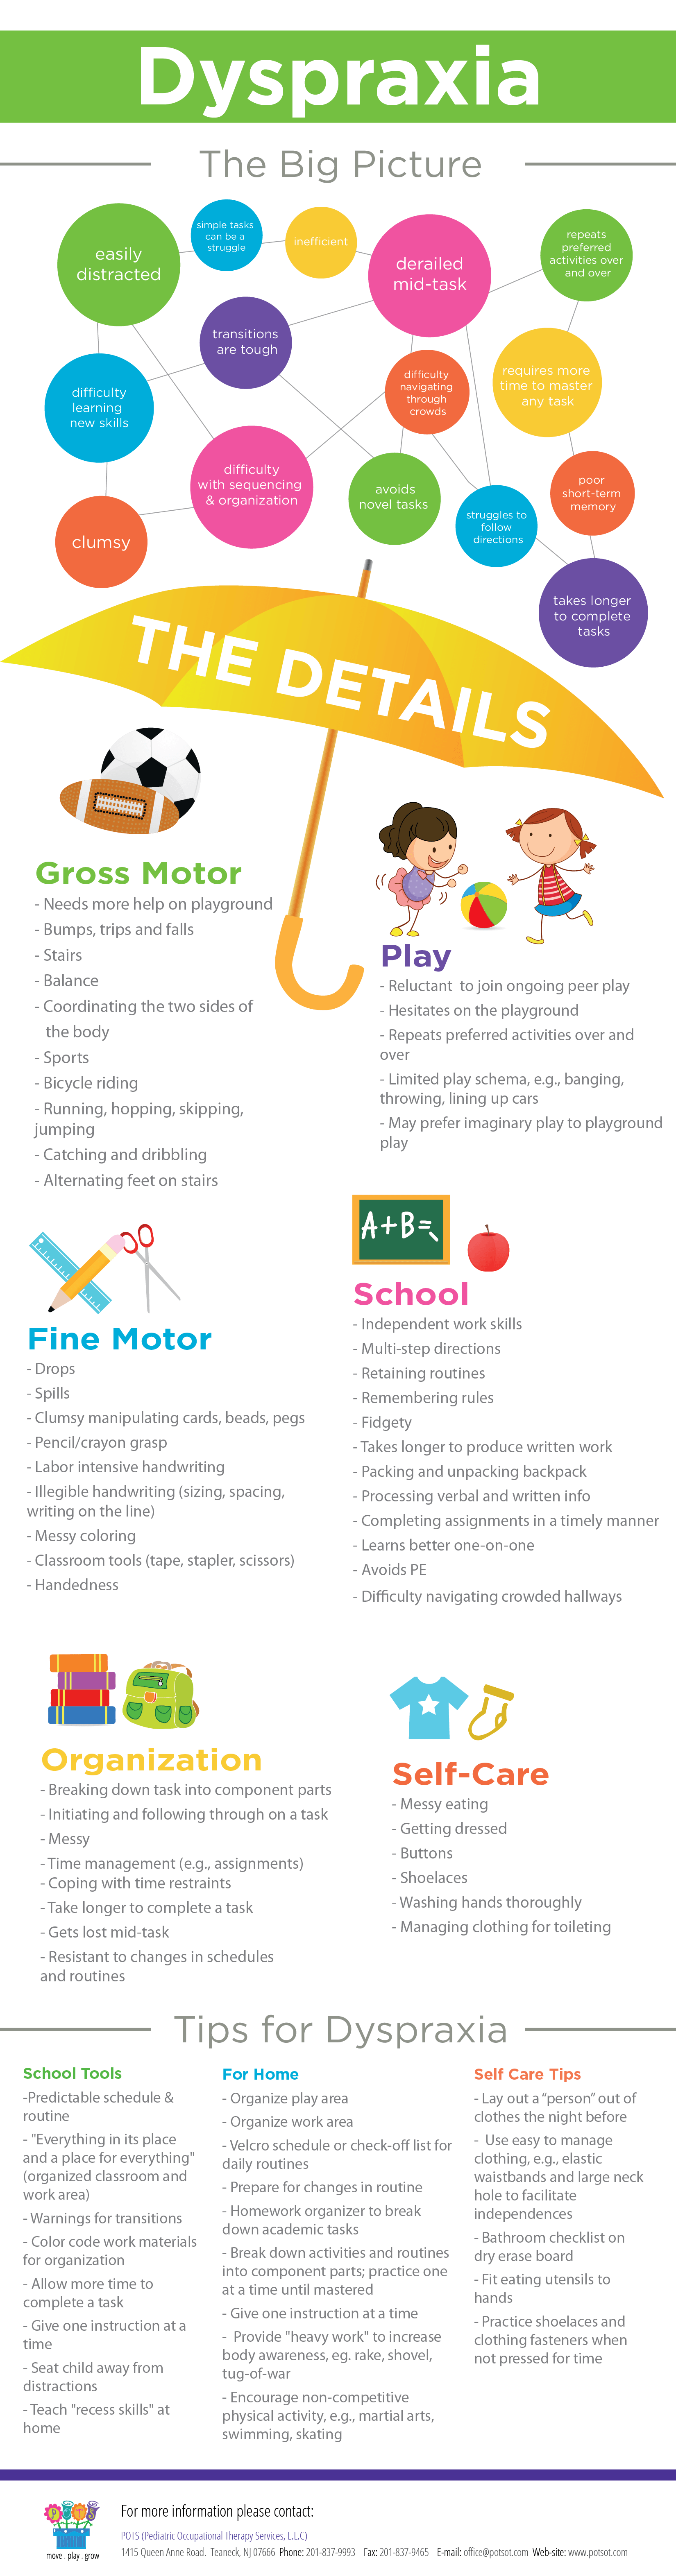 How to Deal With Dyspraxia Infographic